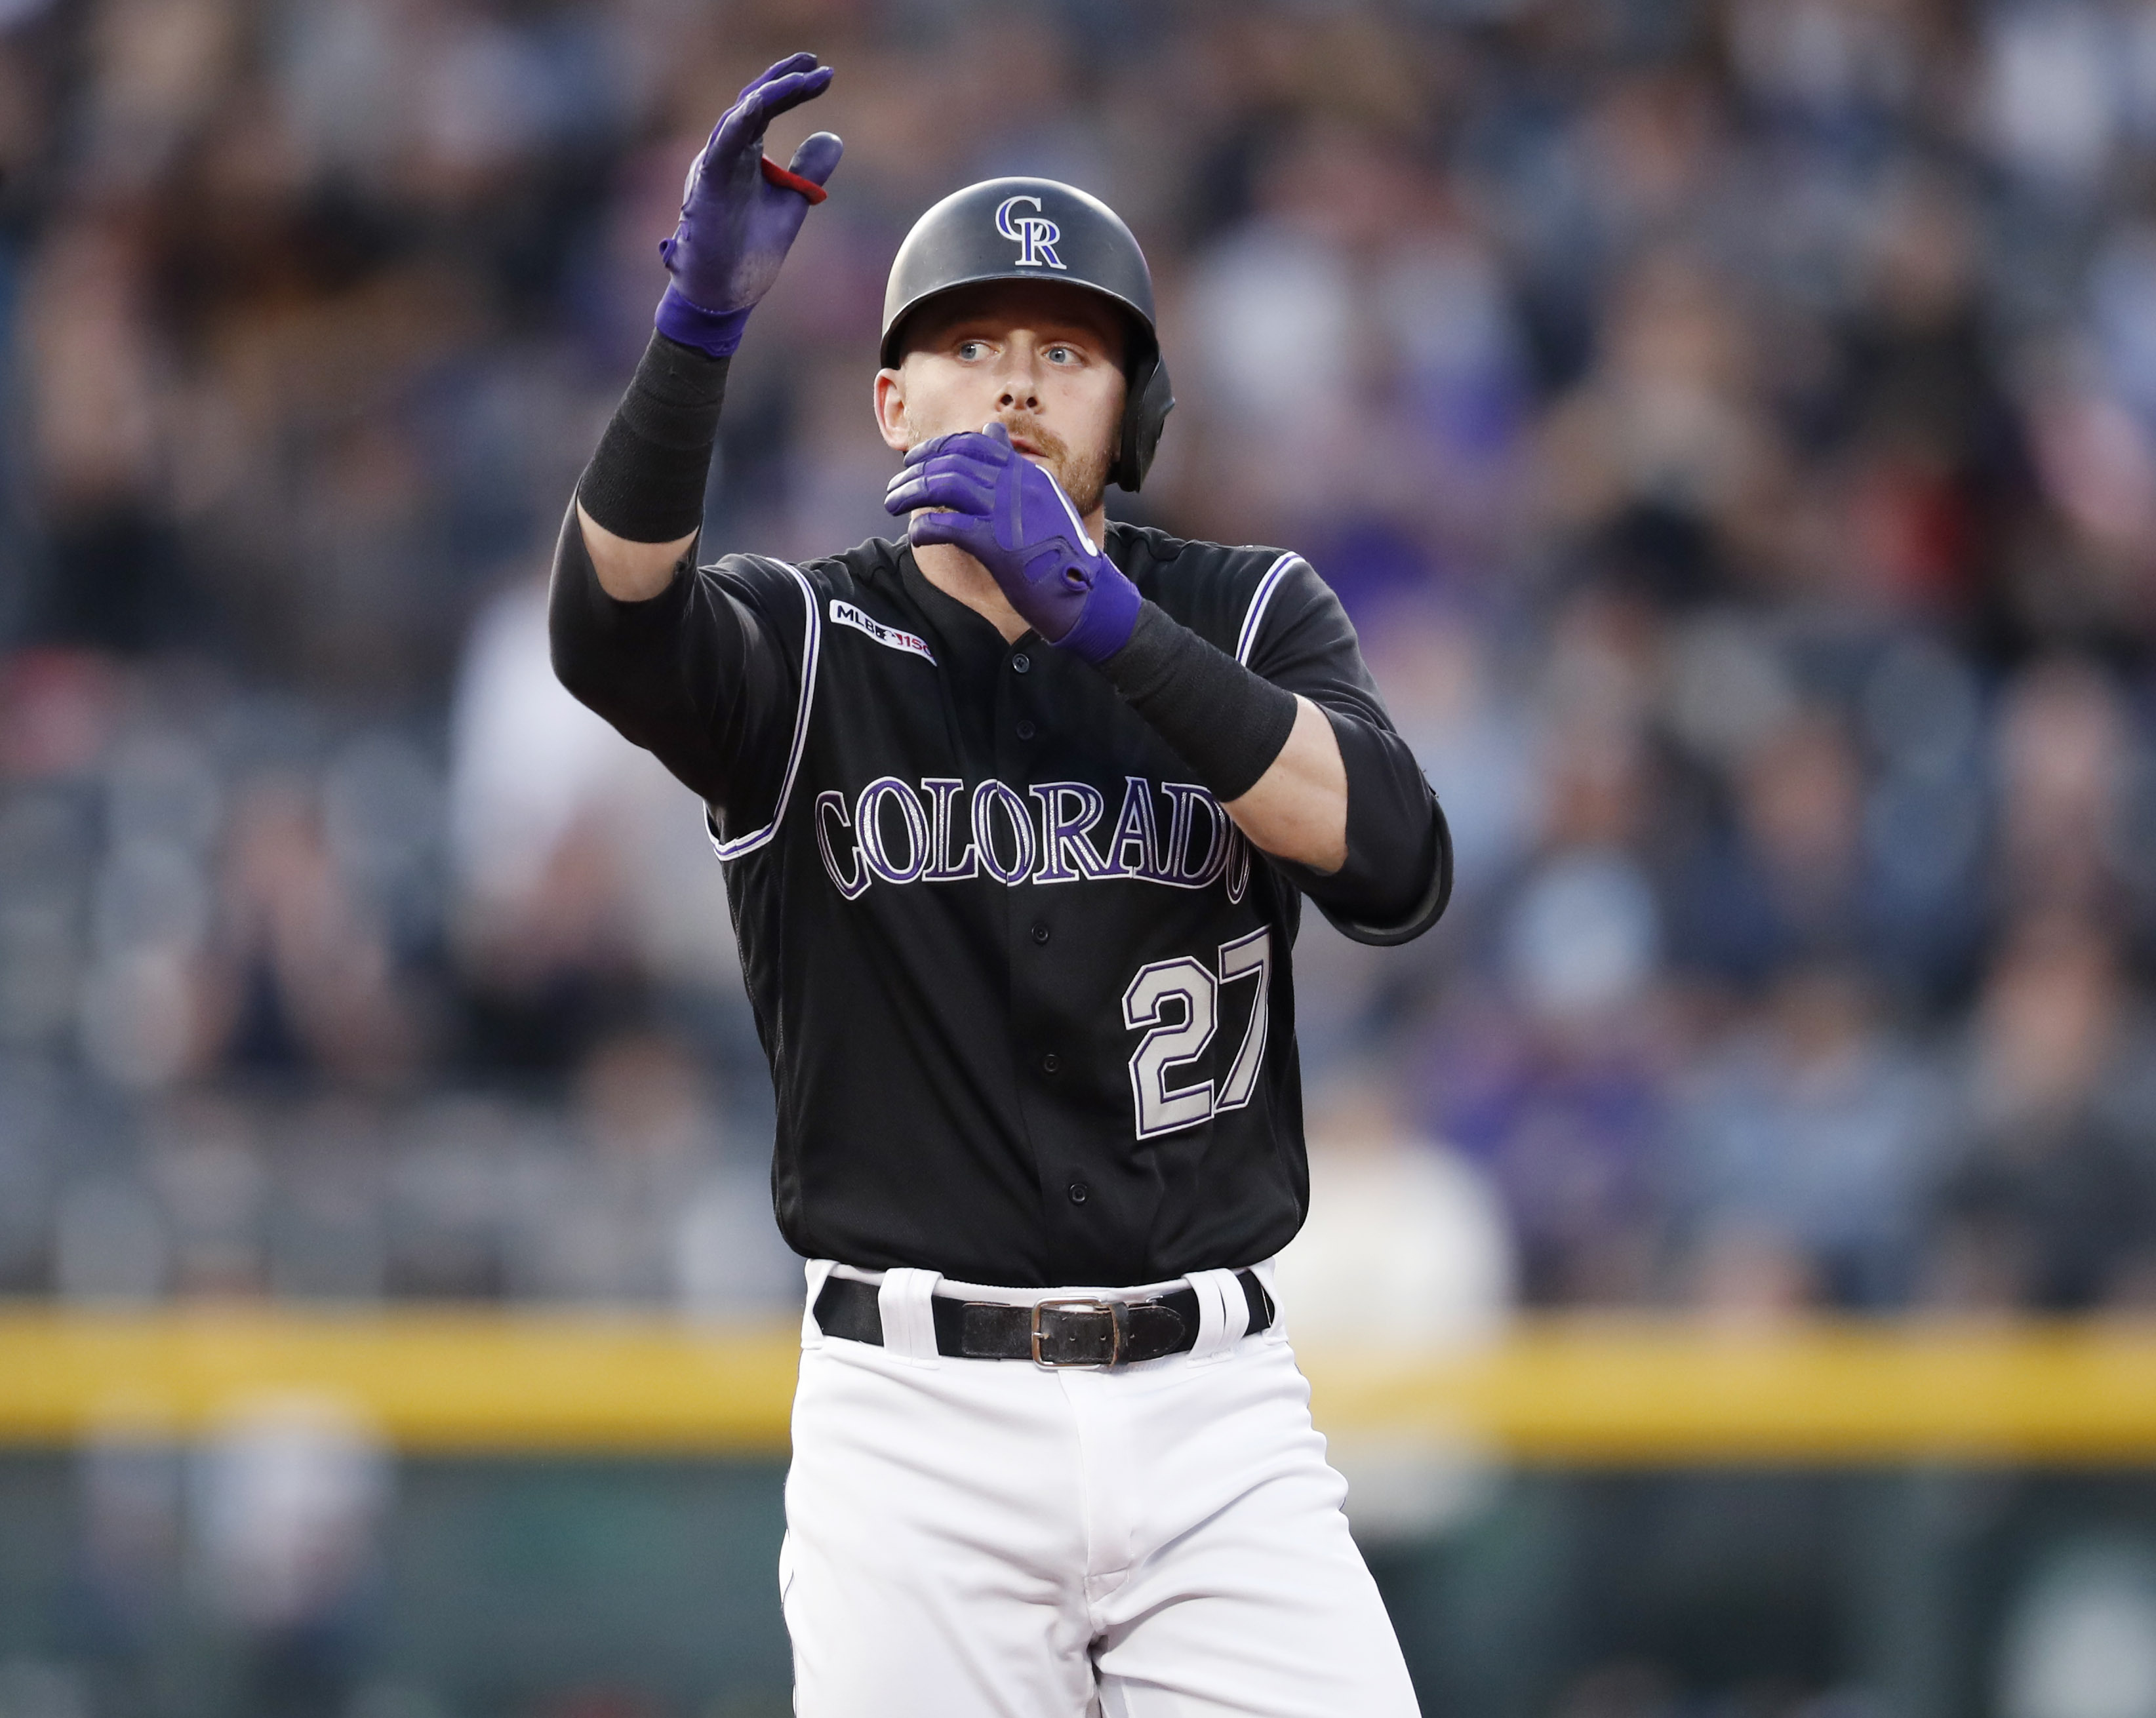 Trevor Story homers twice, Rockies rout Blue Jays 13-6